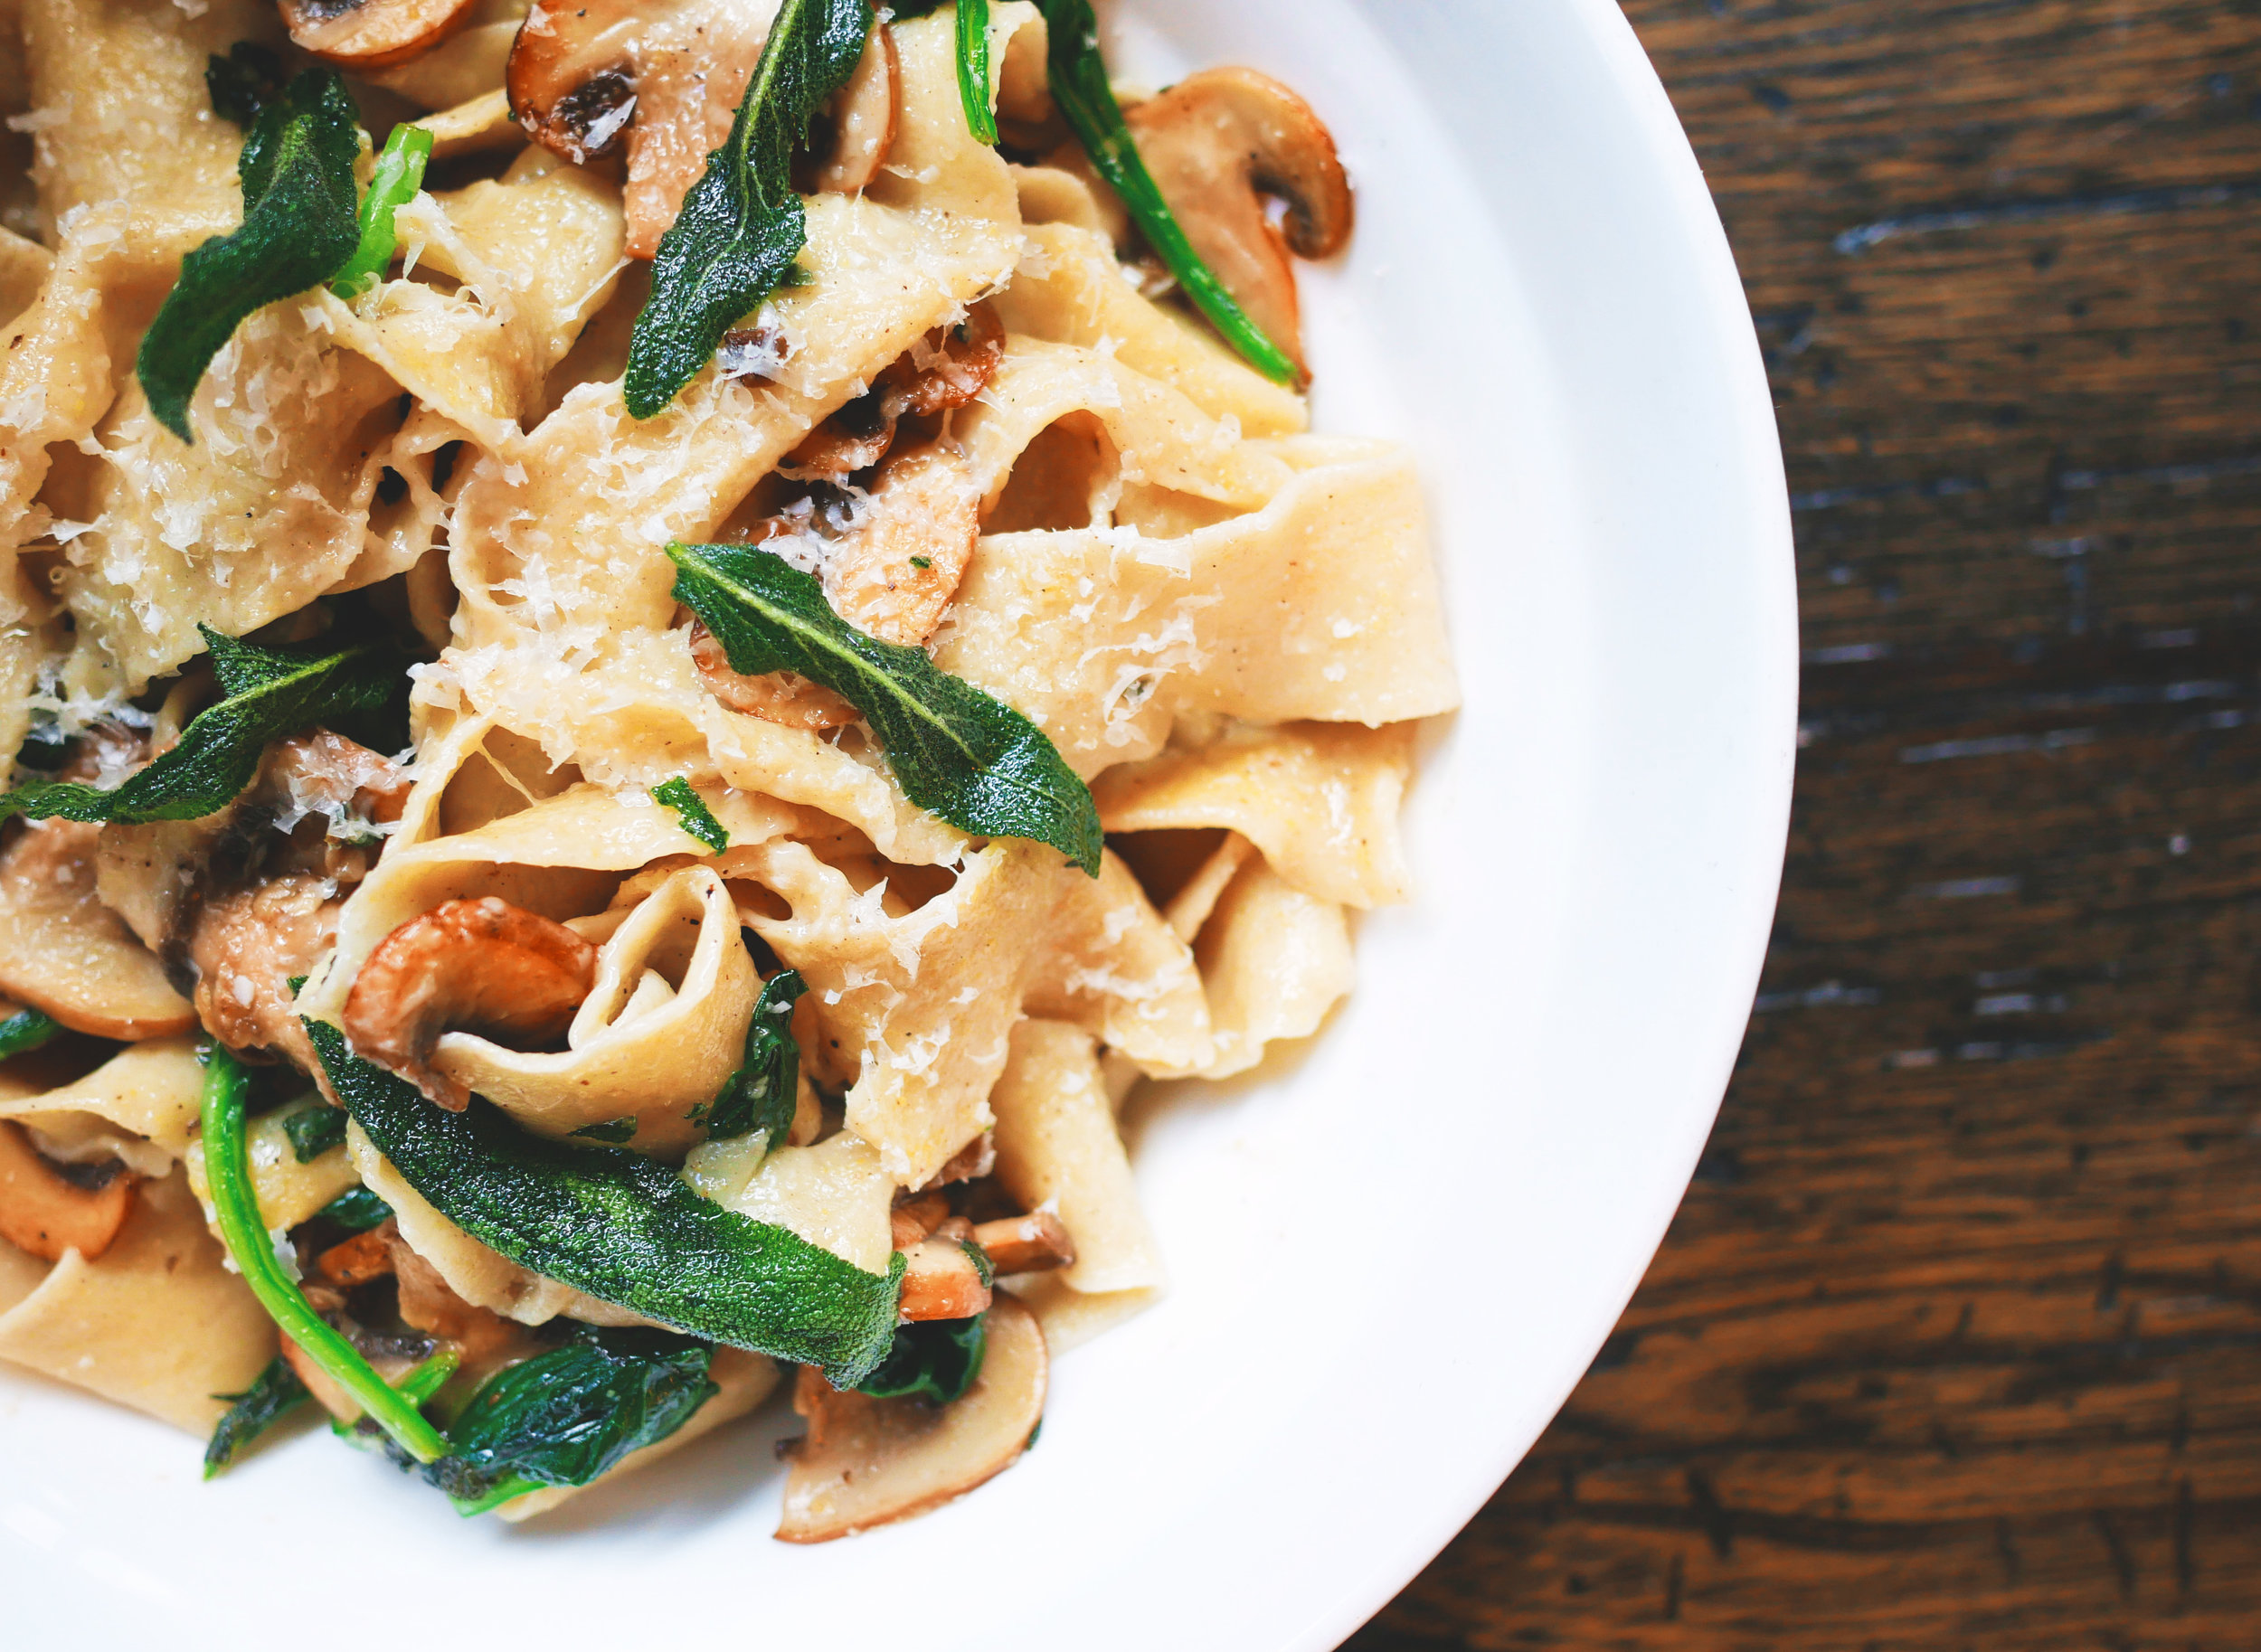 Collecting recipes from plant-based eating enthusiasts, like Zucchini Mushroom Pasta, is one way to kickstart a switch to eating less meat.